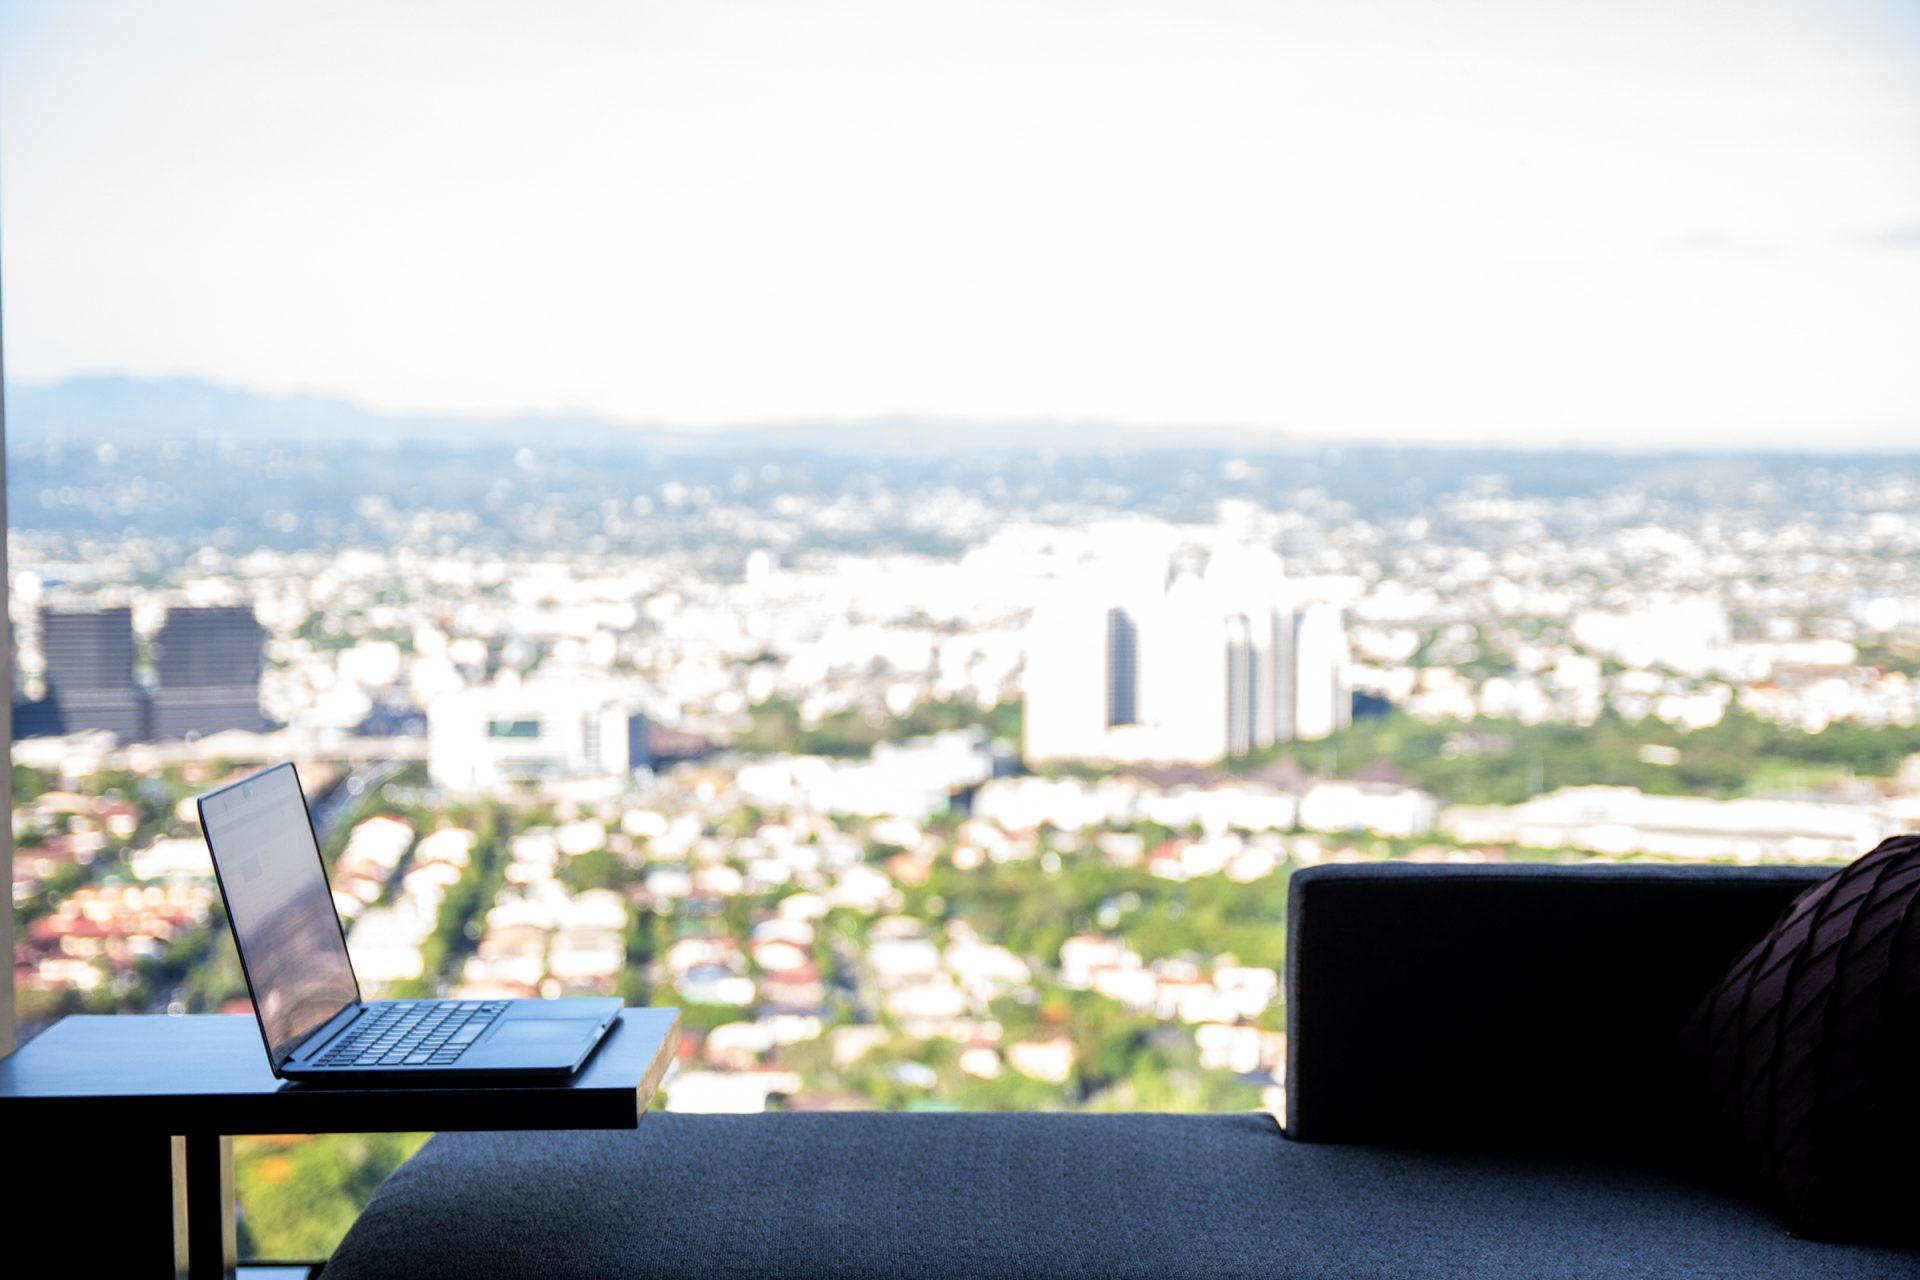 Laptop On Table Near Window With View